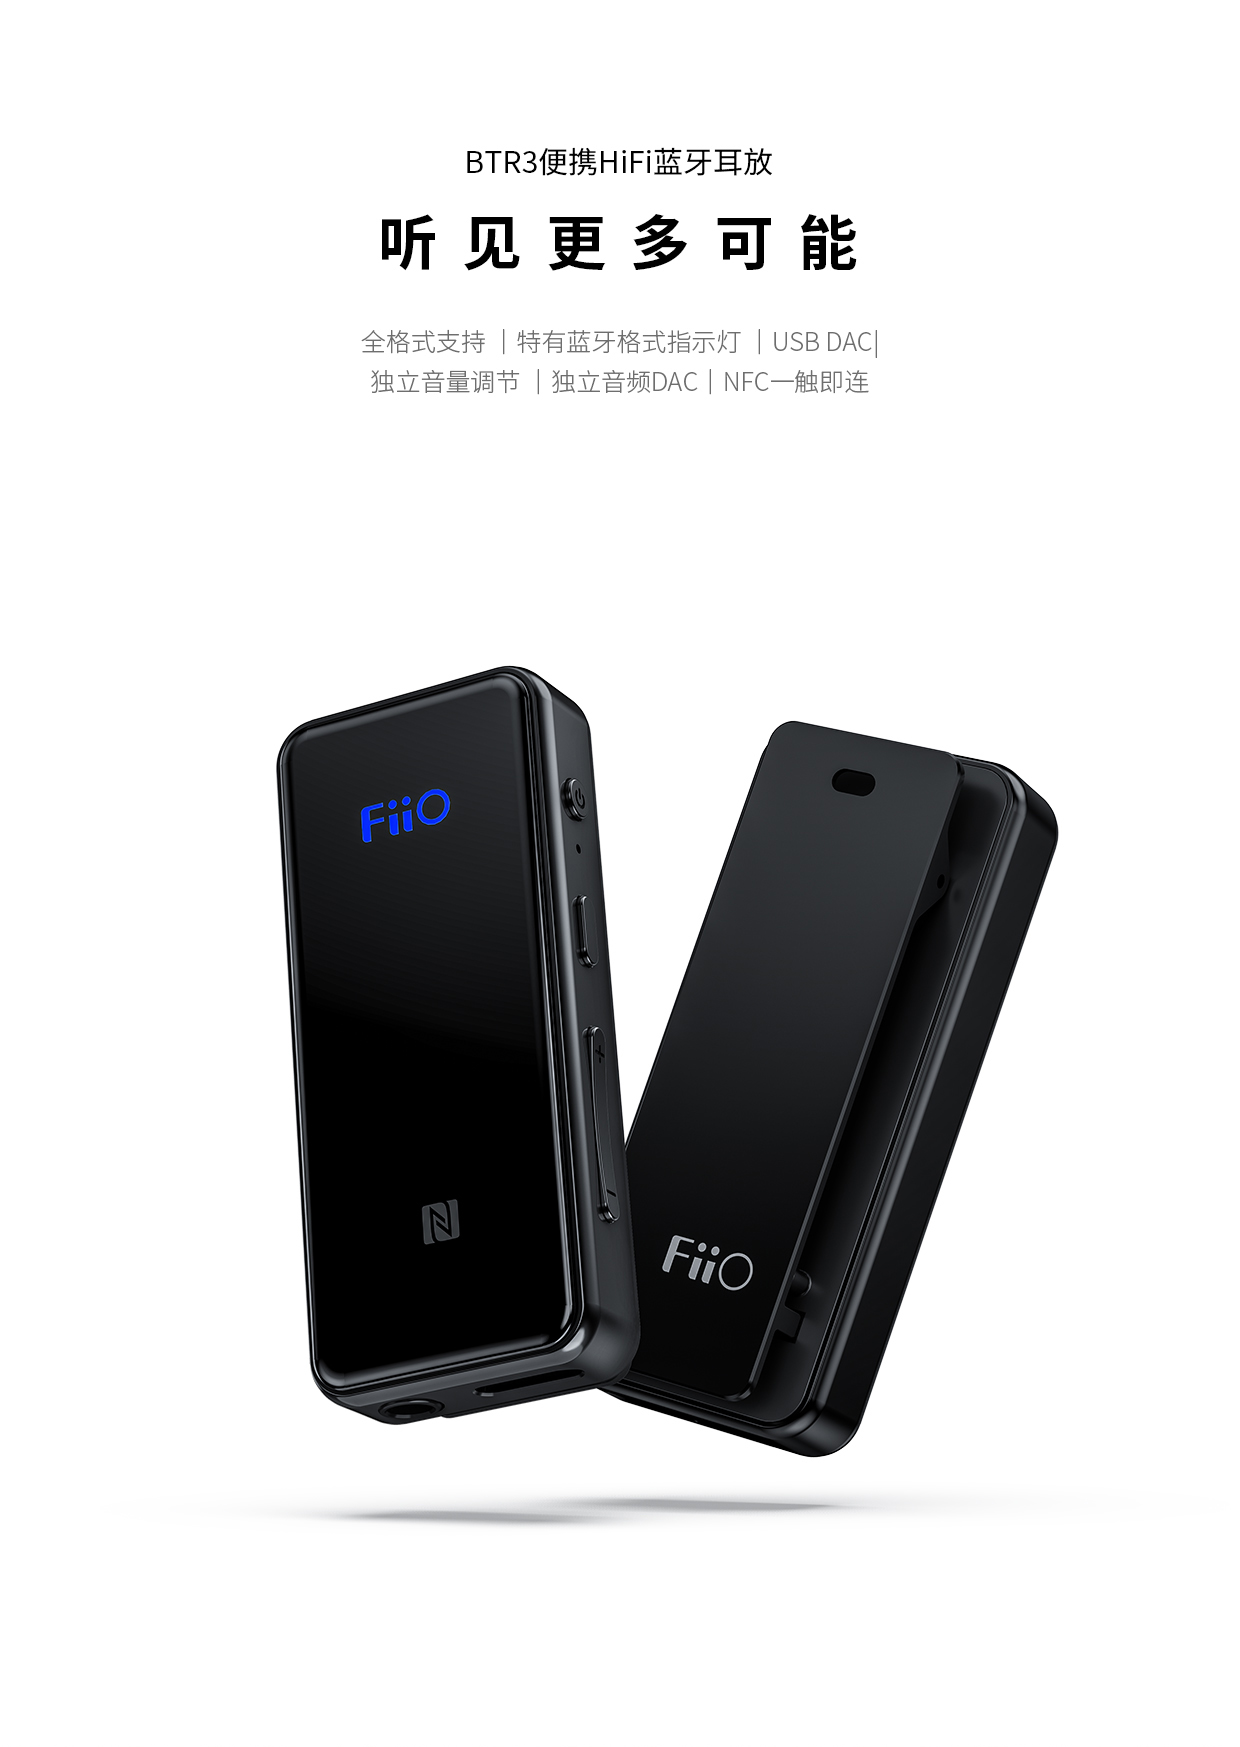 Details about FiiO BTR3 lossless LDAC Bluetooth audio receiver LHDC high  fidelity amp